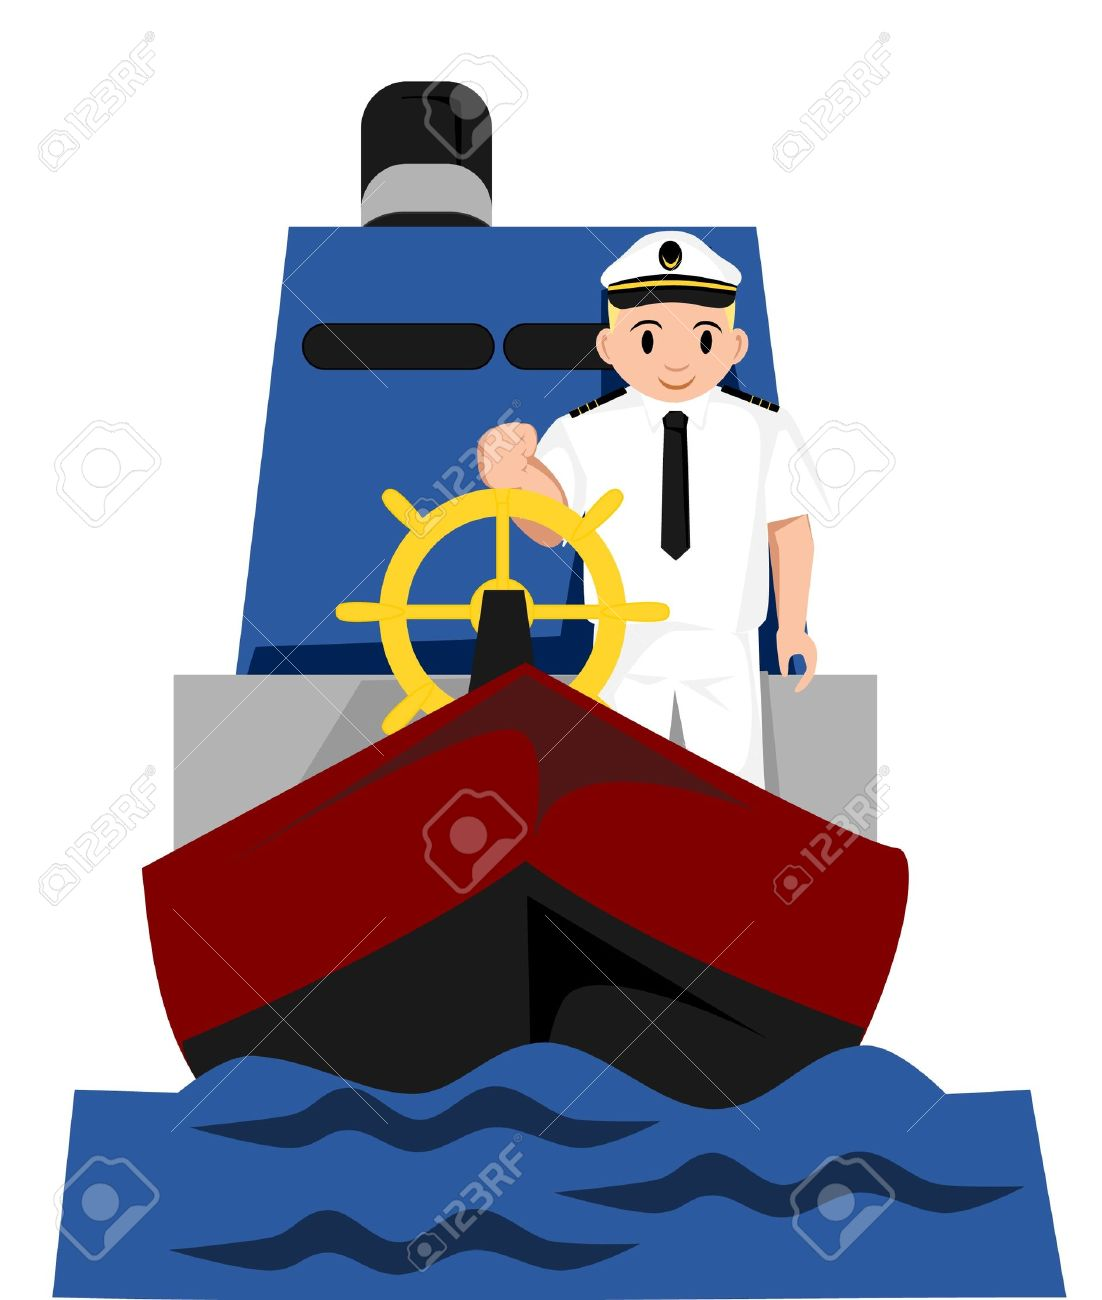 Captain of a ship clipart.